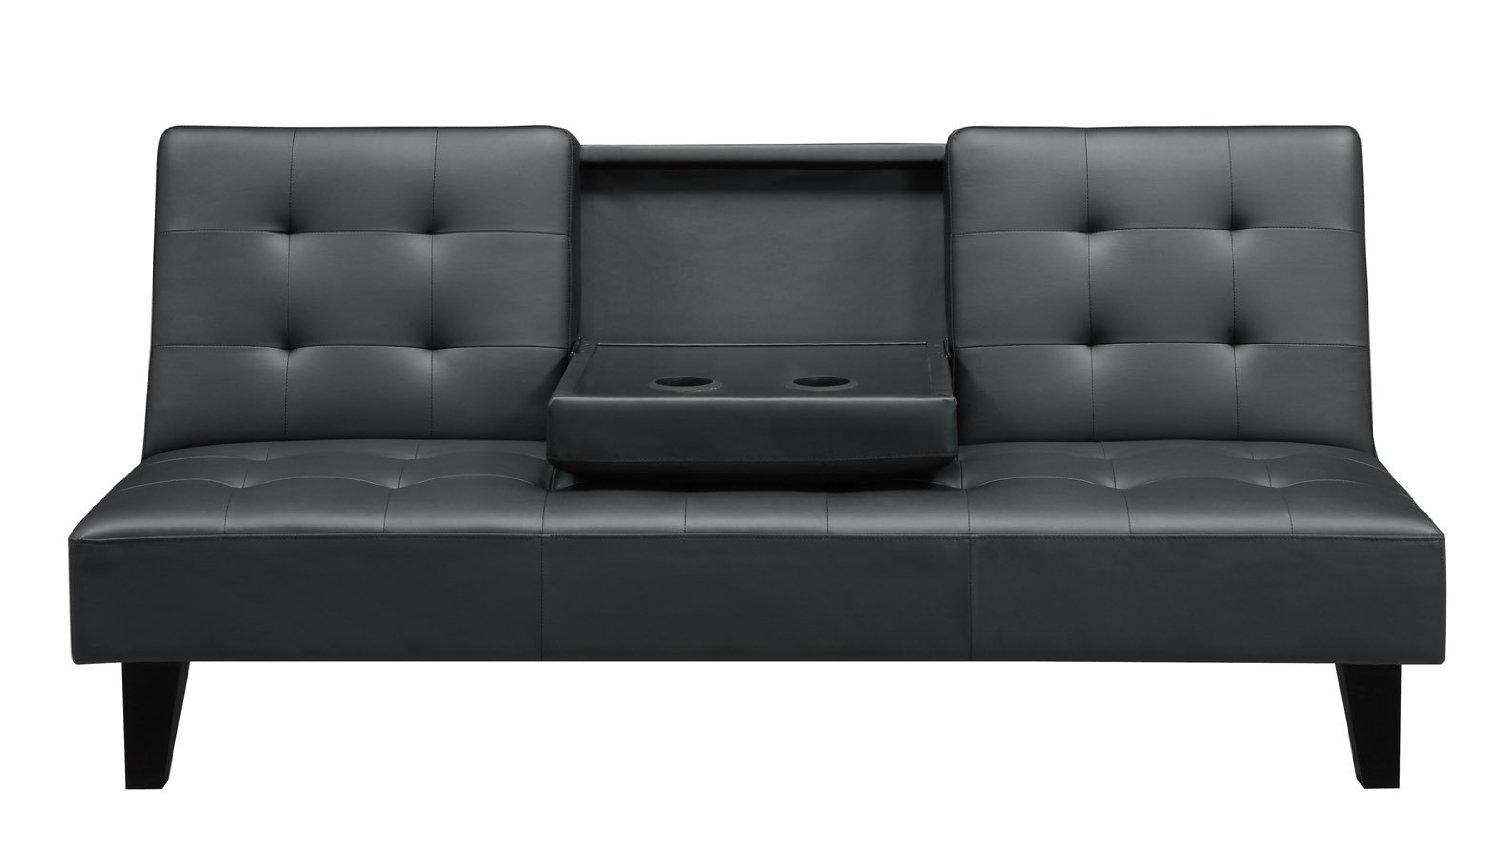 Living Room : Appealing Sharp Black Leather Sofa Bed Having Sturdy Pertaining To Chintz Sofa Beds (View 17 of 20)